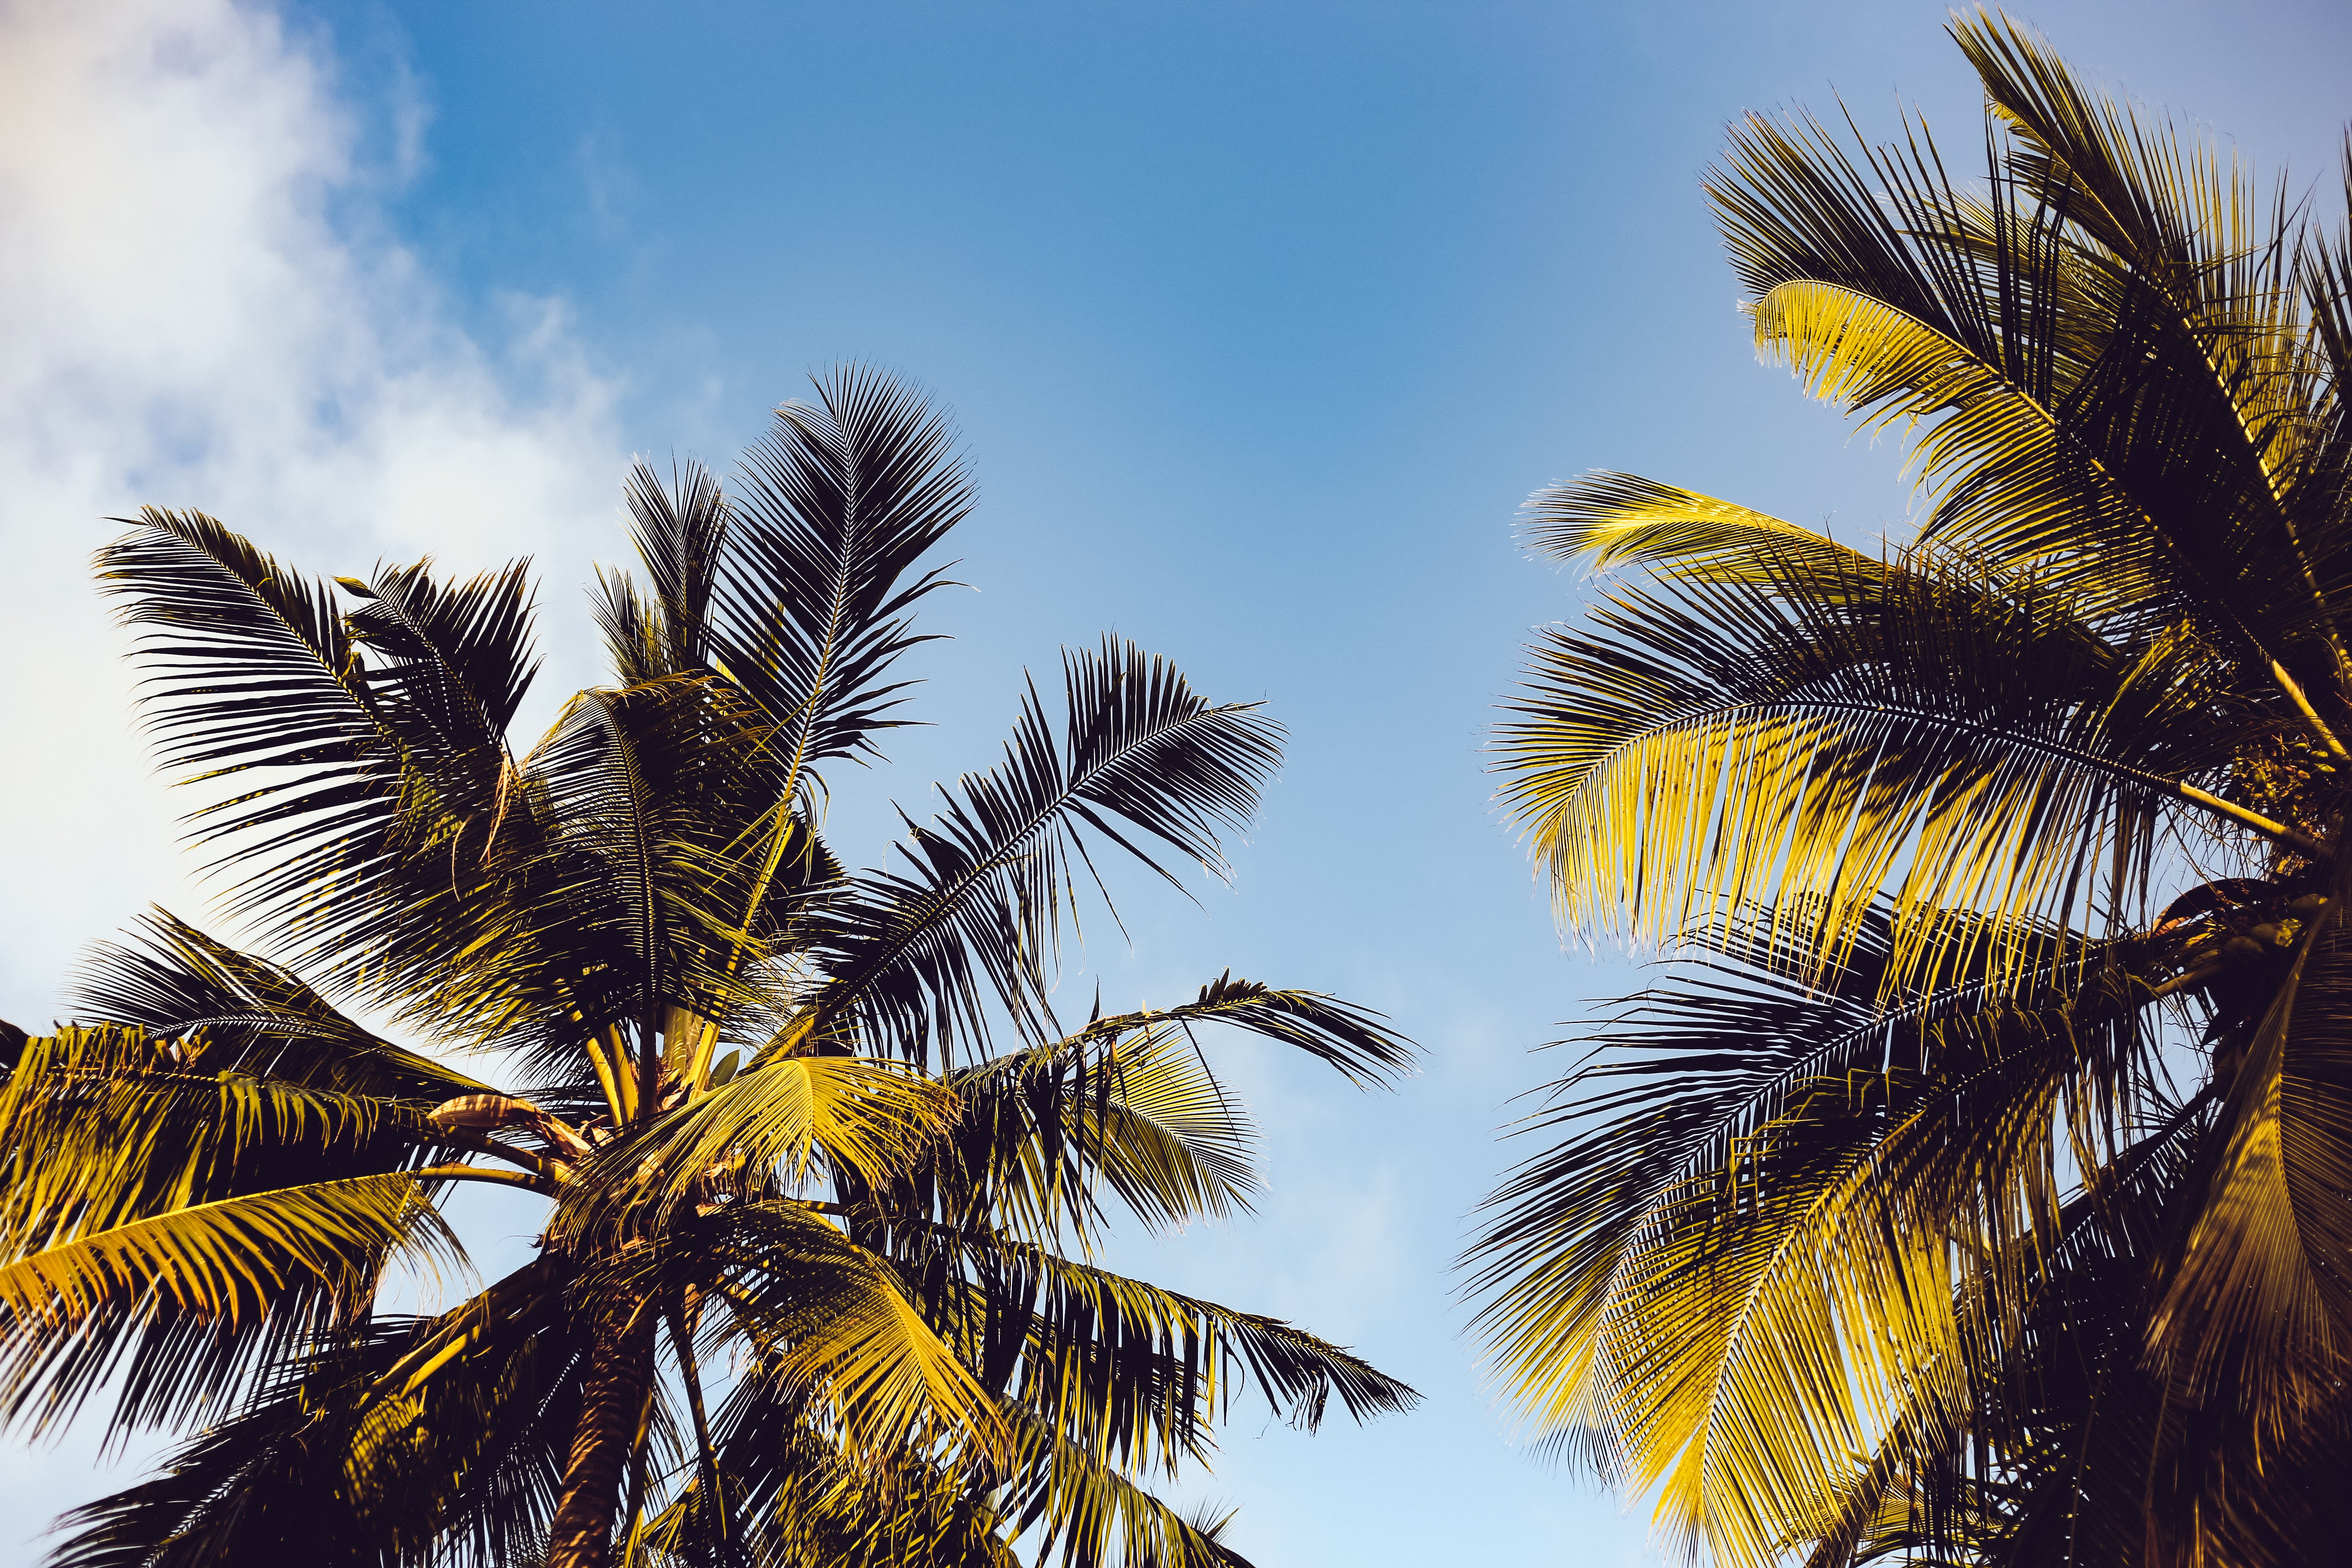 Clear Blue Sky over Two Coconut Trees